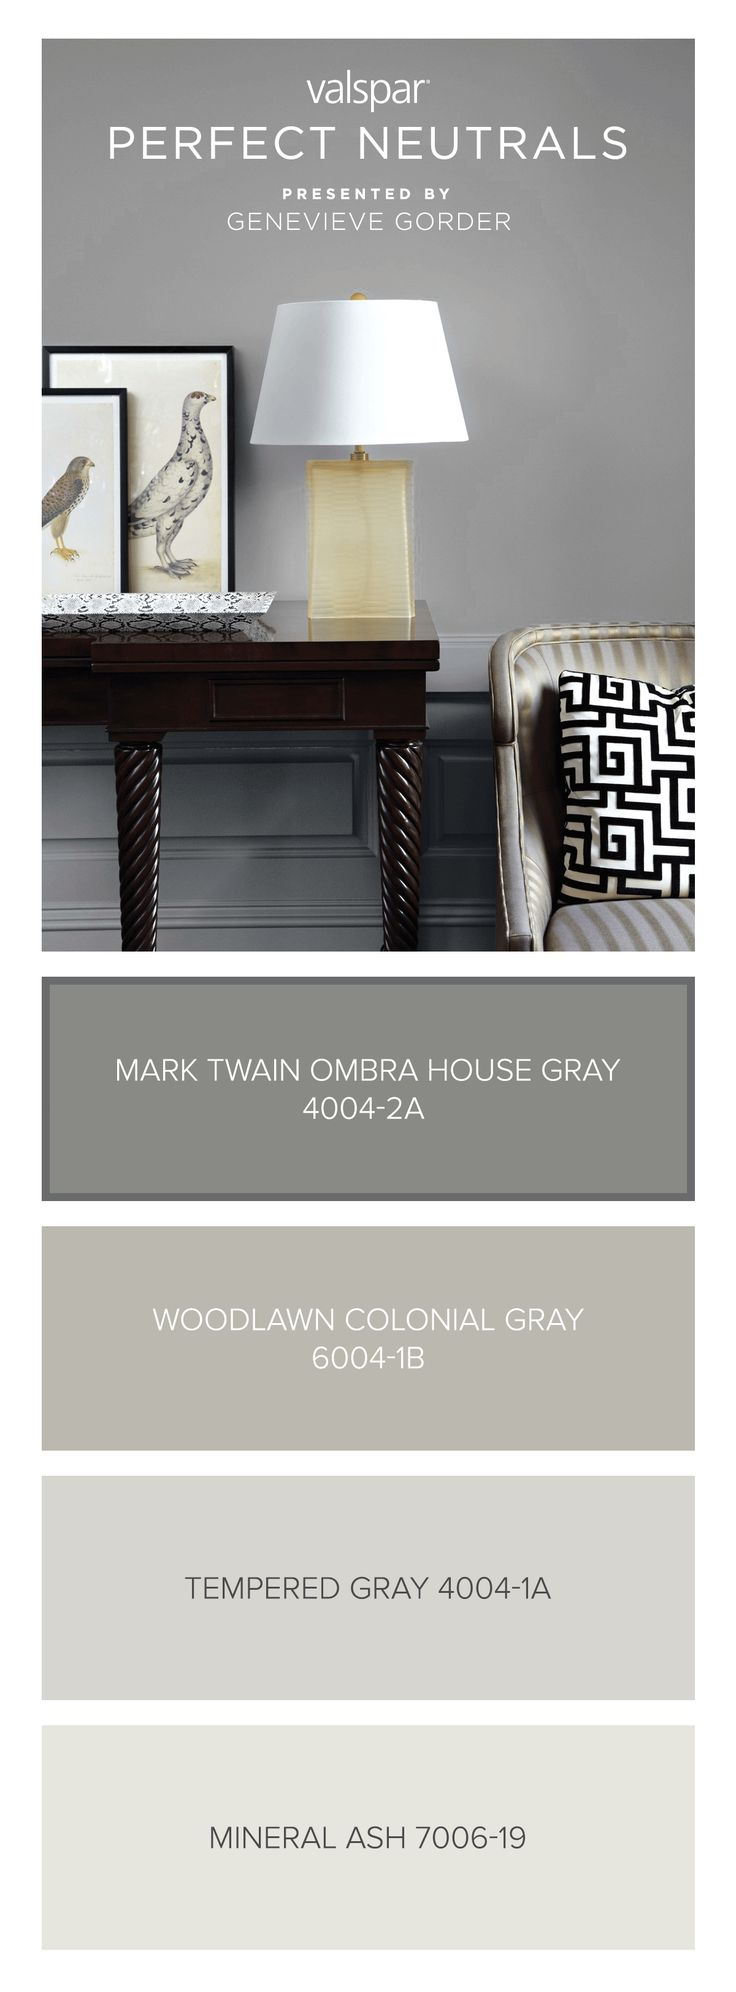 Here S A Tip From Genevieve Gorder Mark Twain House Ombra Gray Is Dark Enough To Be Your Grounding Color Light Neutral